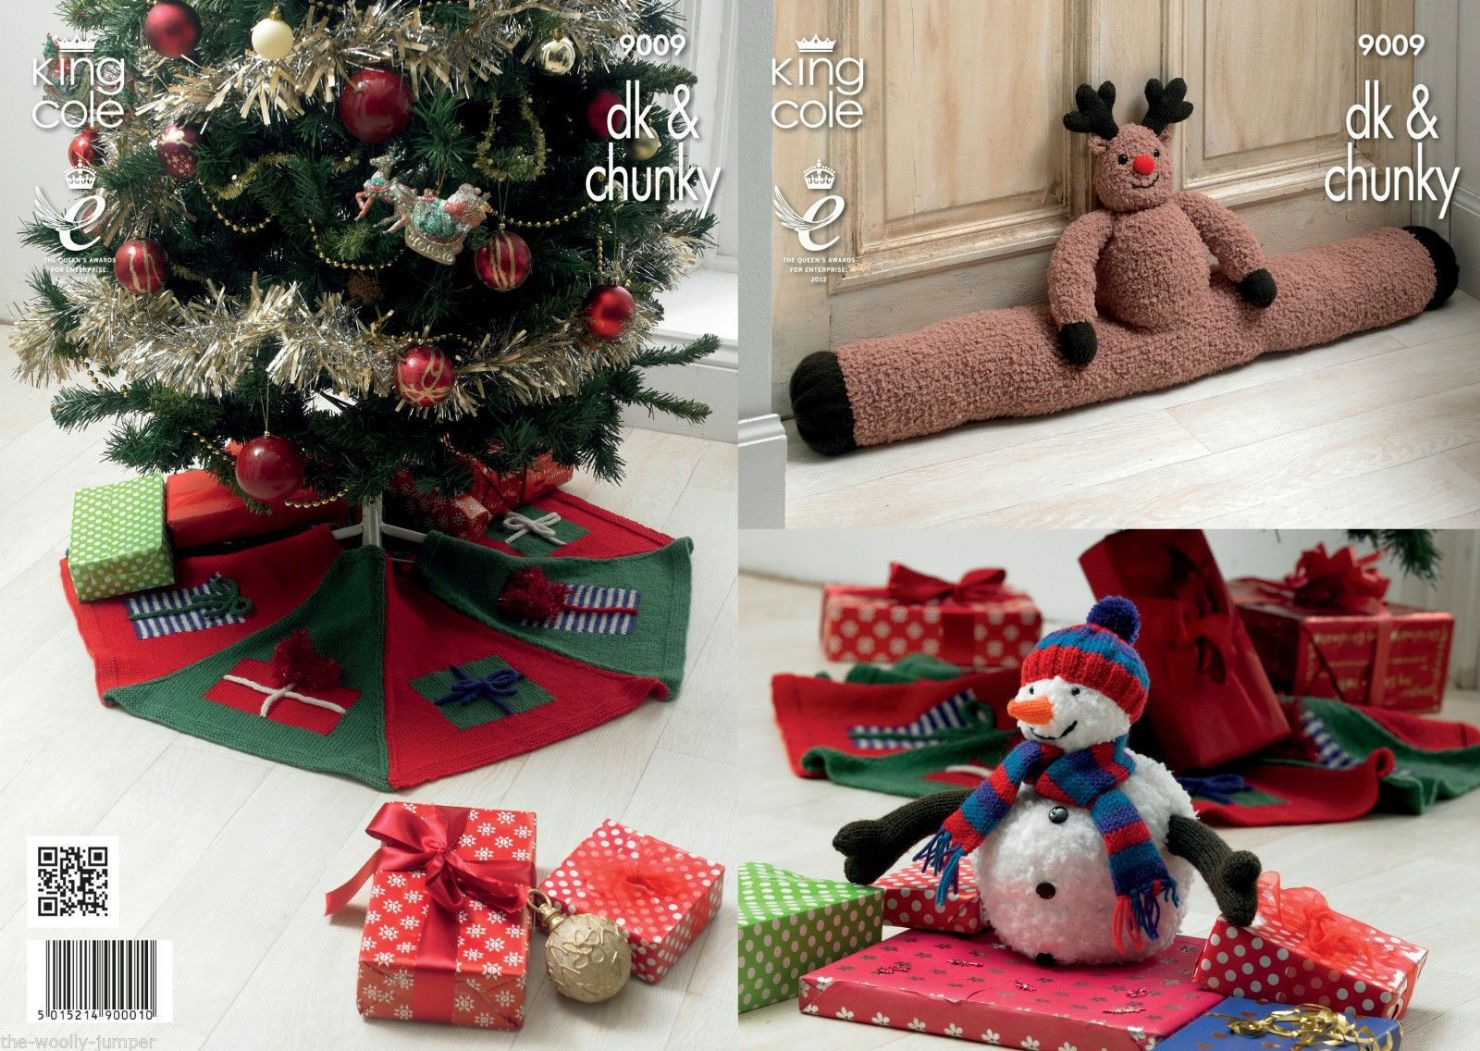 King cole draught rudolf excluder snowman tree